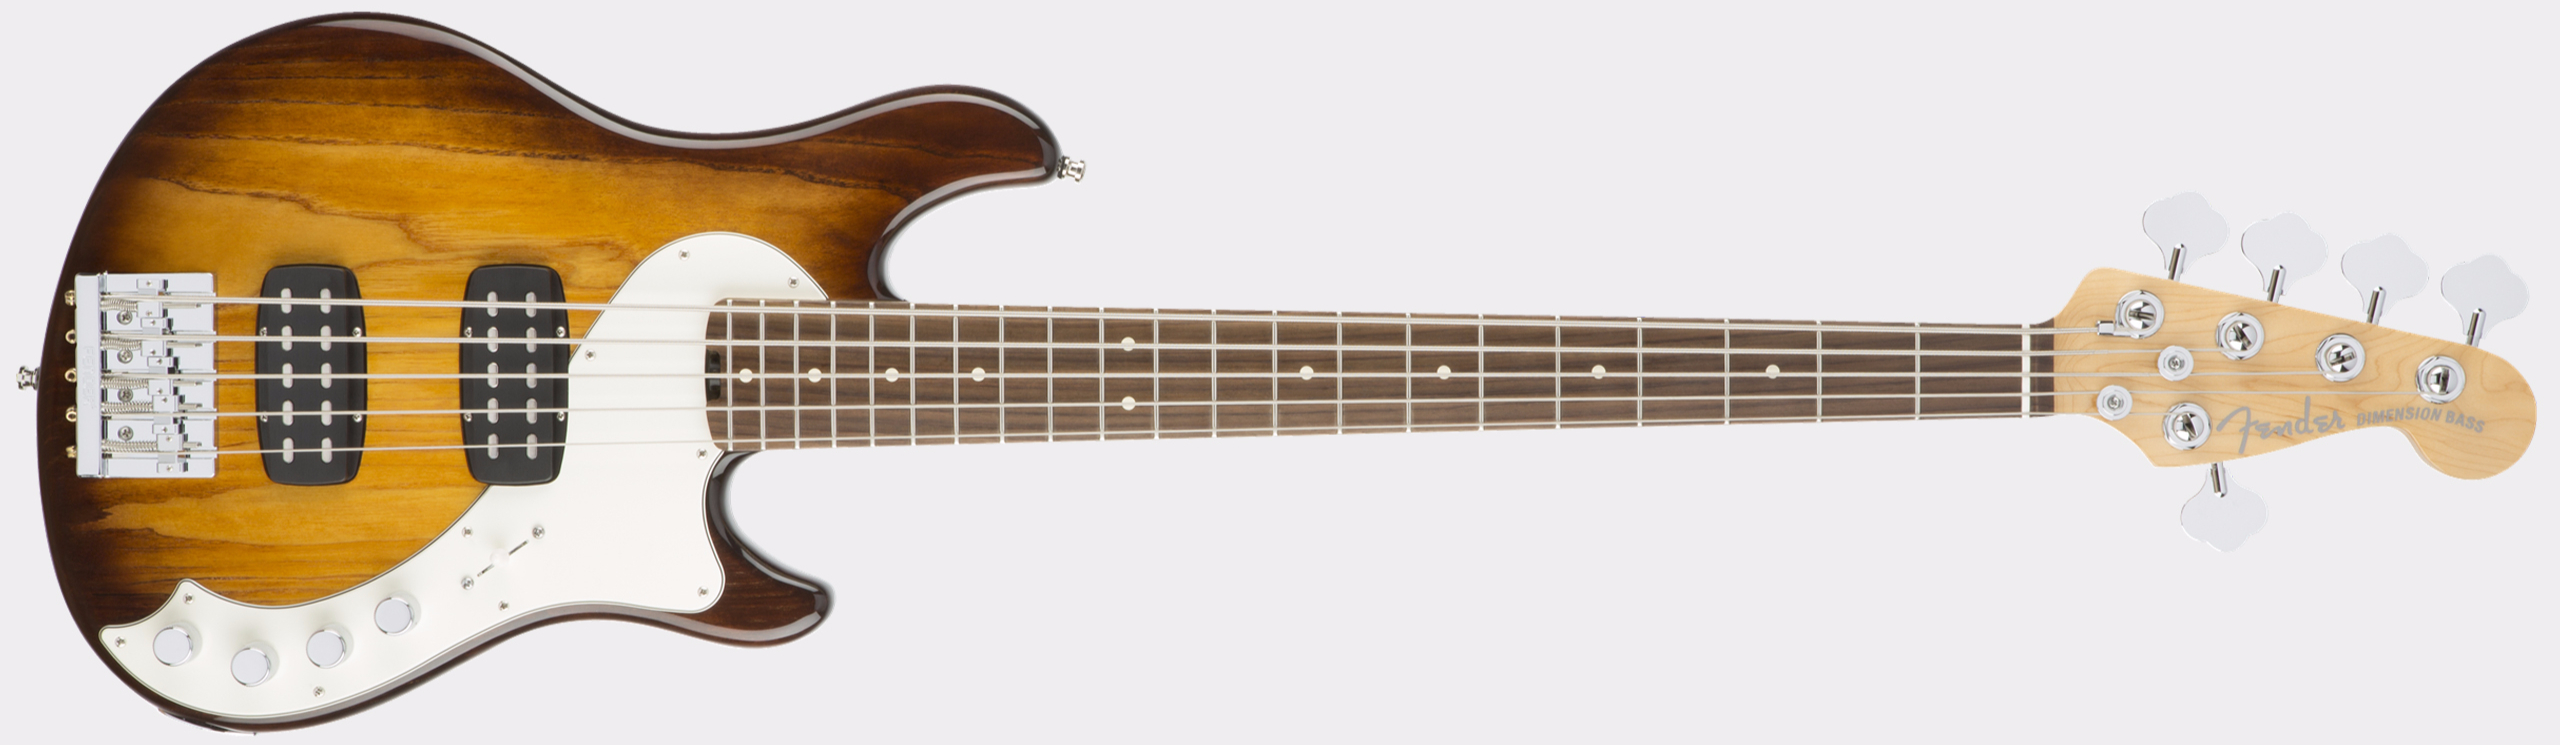 FENDER American Elite Dimension Bass V HH RW Violin Burst